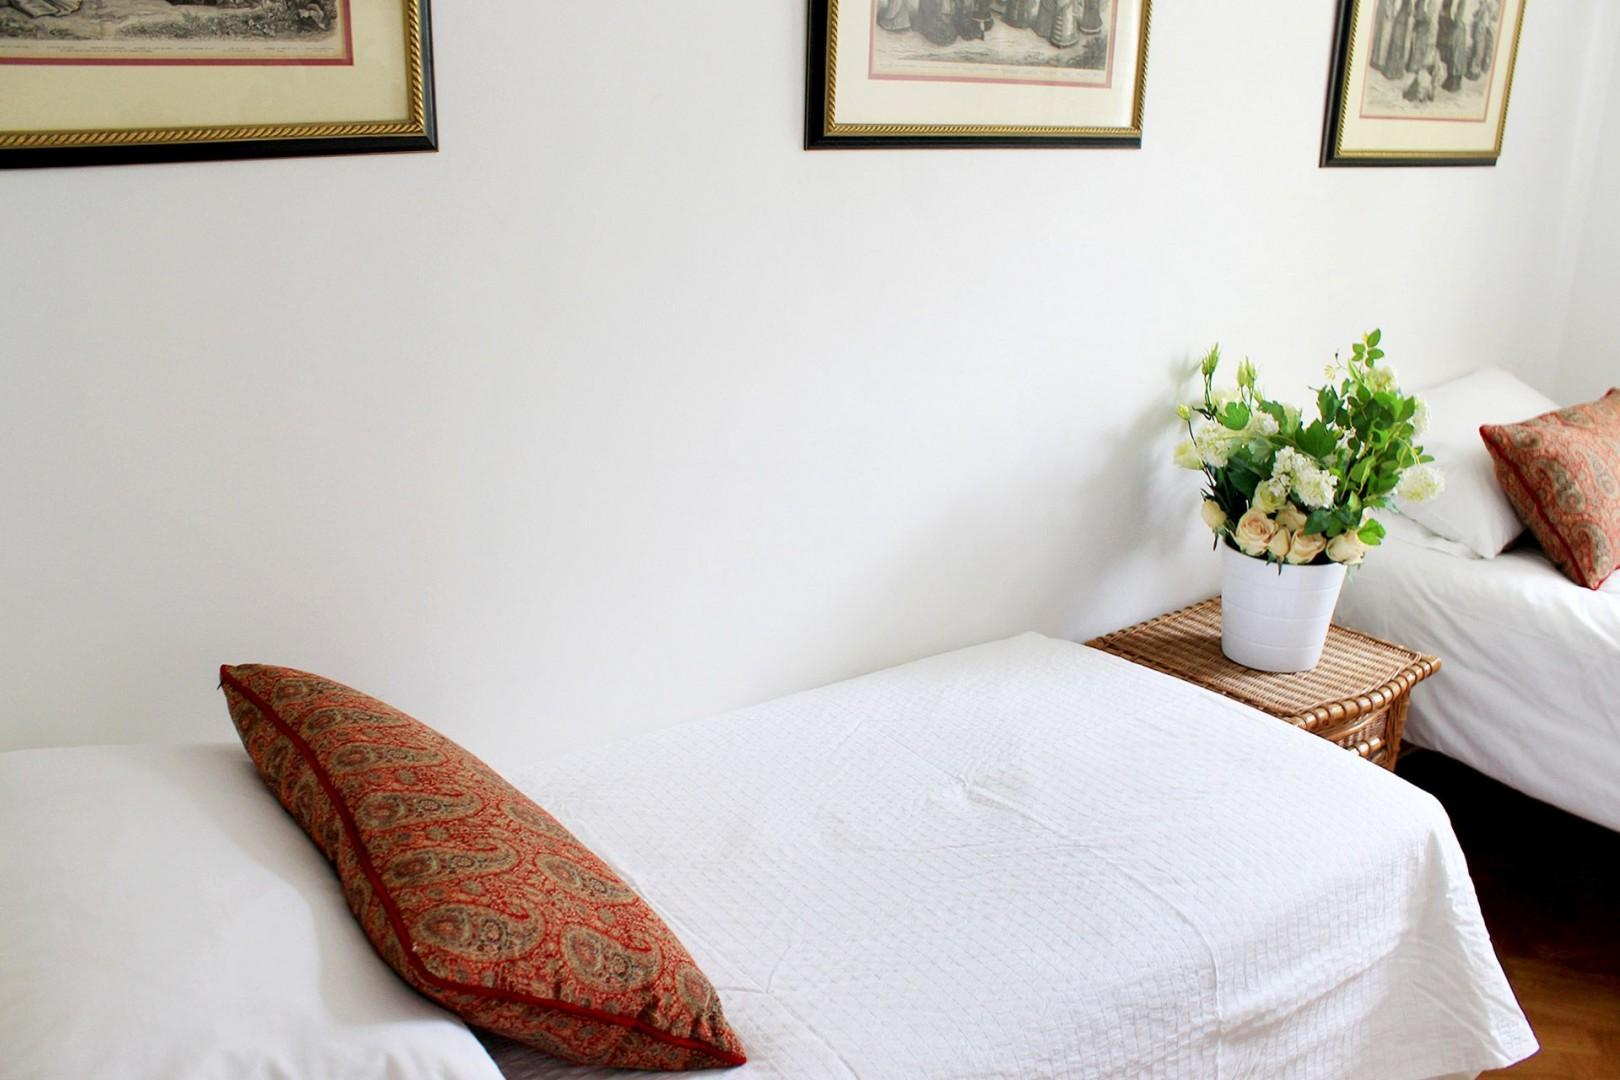 Two beds with high-quality mattresses and linens